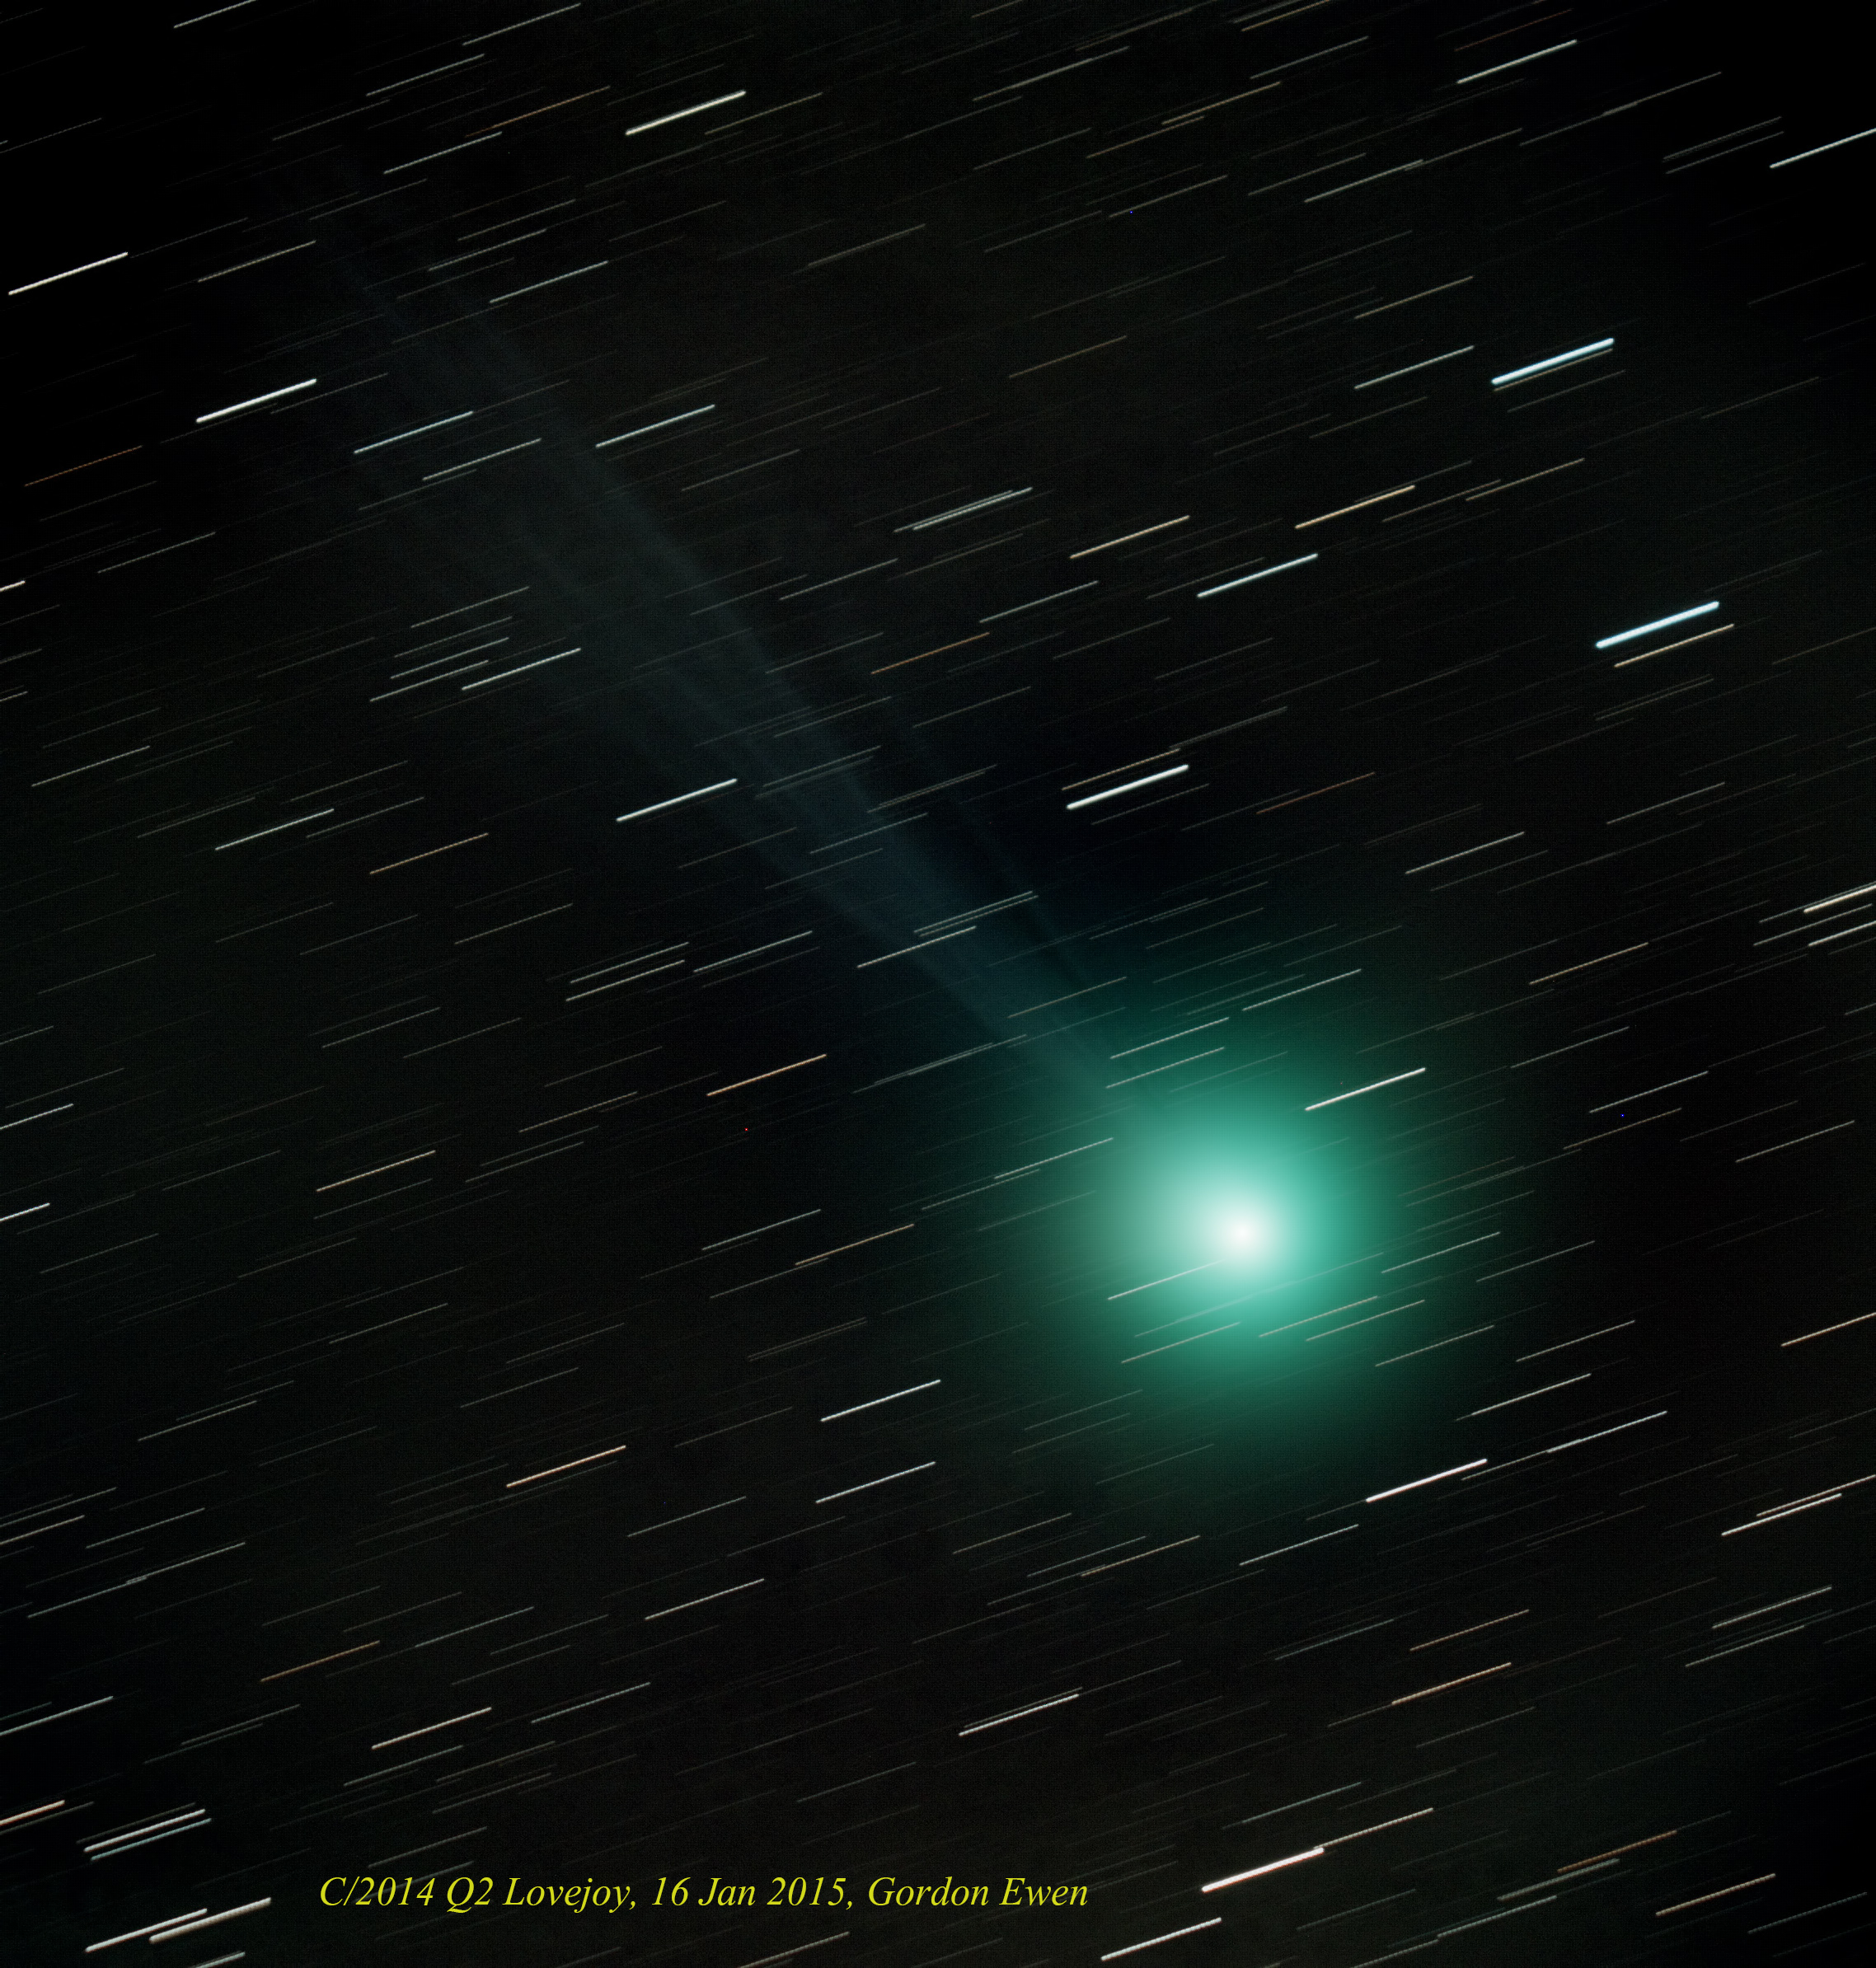 Lovejoy 16 Jan, Hyperstar Edge 11